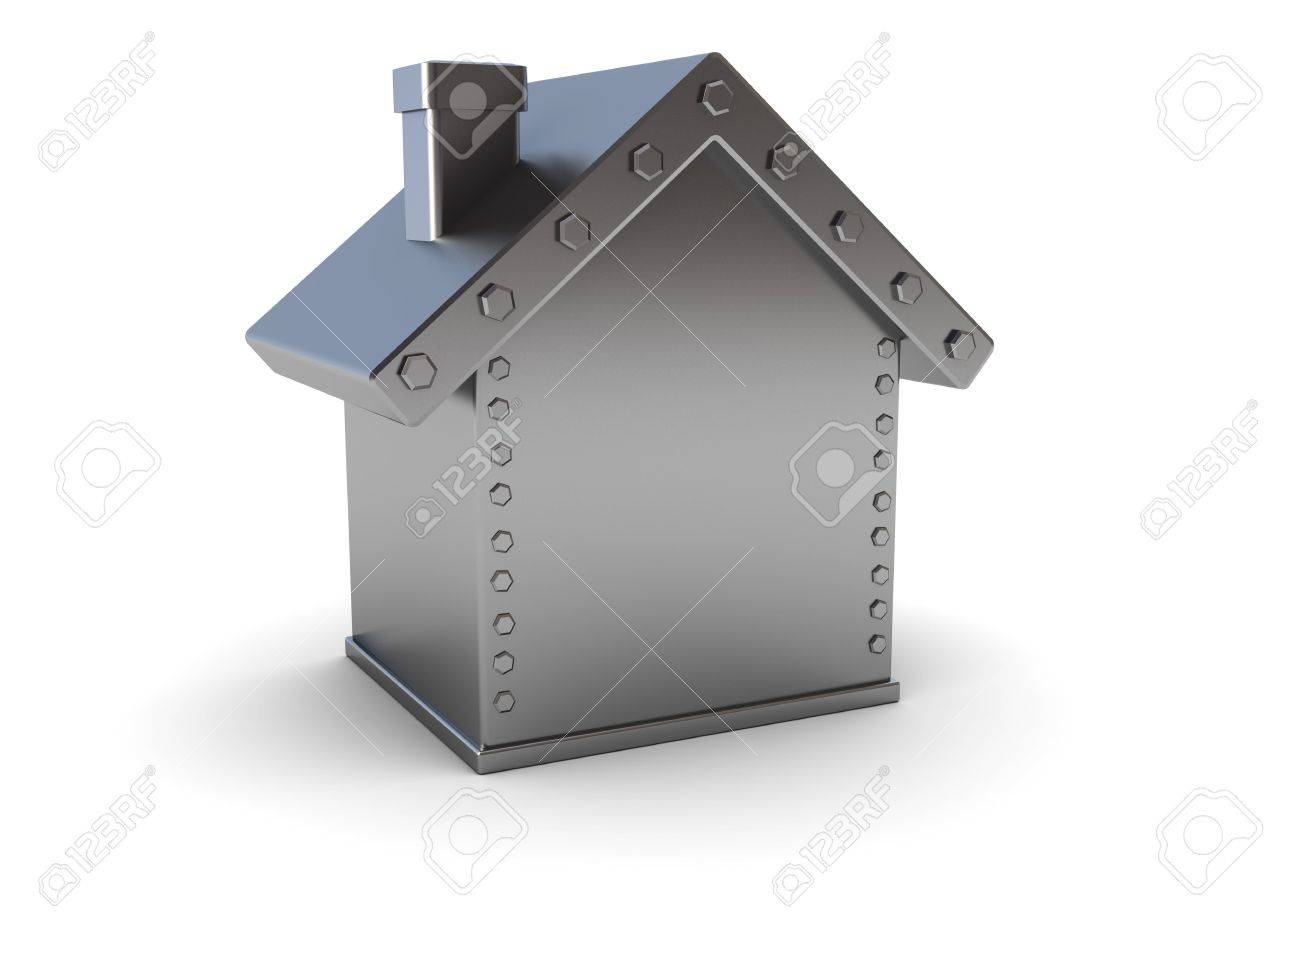 abstract 3d illustration of steel house safe over white background Stock Photo - 6304890